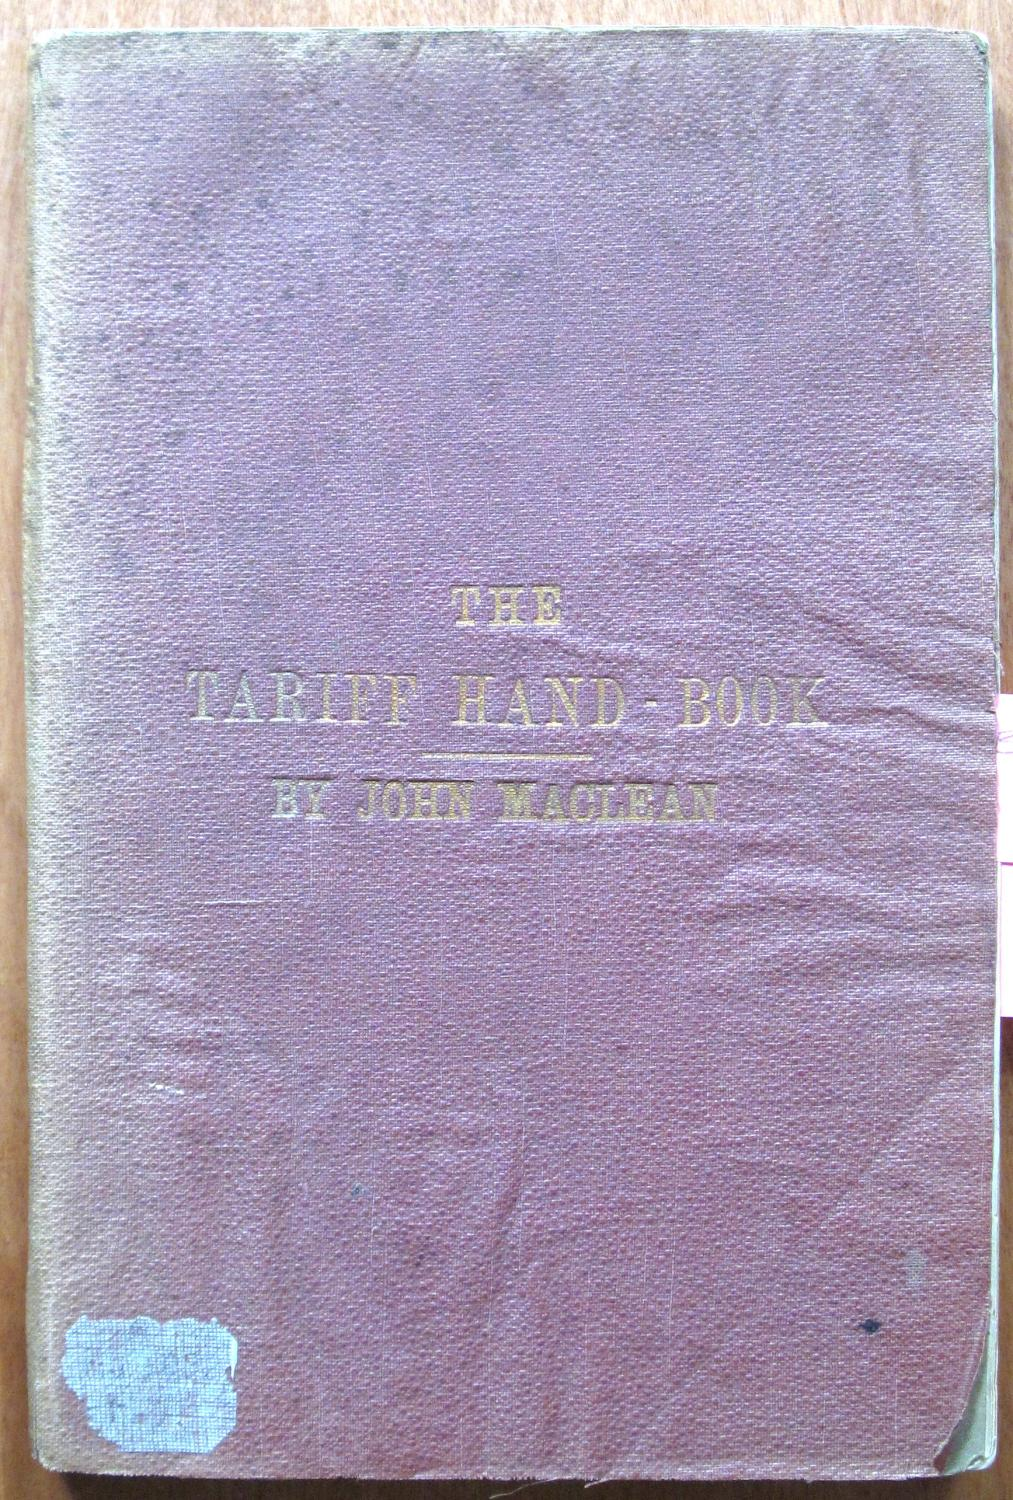 The Tariff Hand-Book Shewing the Canadian Customs' Tariff, with the Various Changes Made During the Last Few Years, Also the British and American Tar